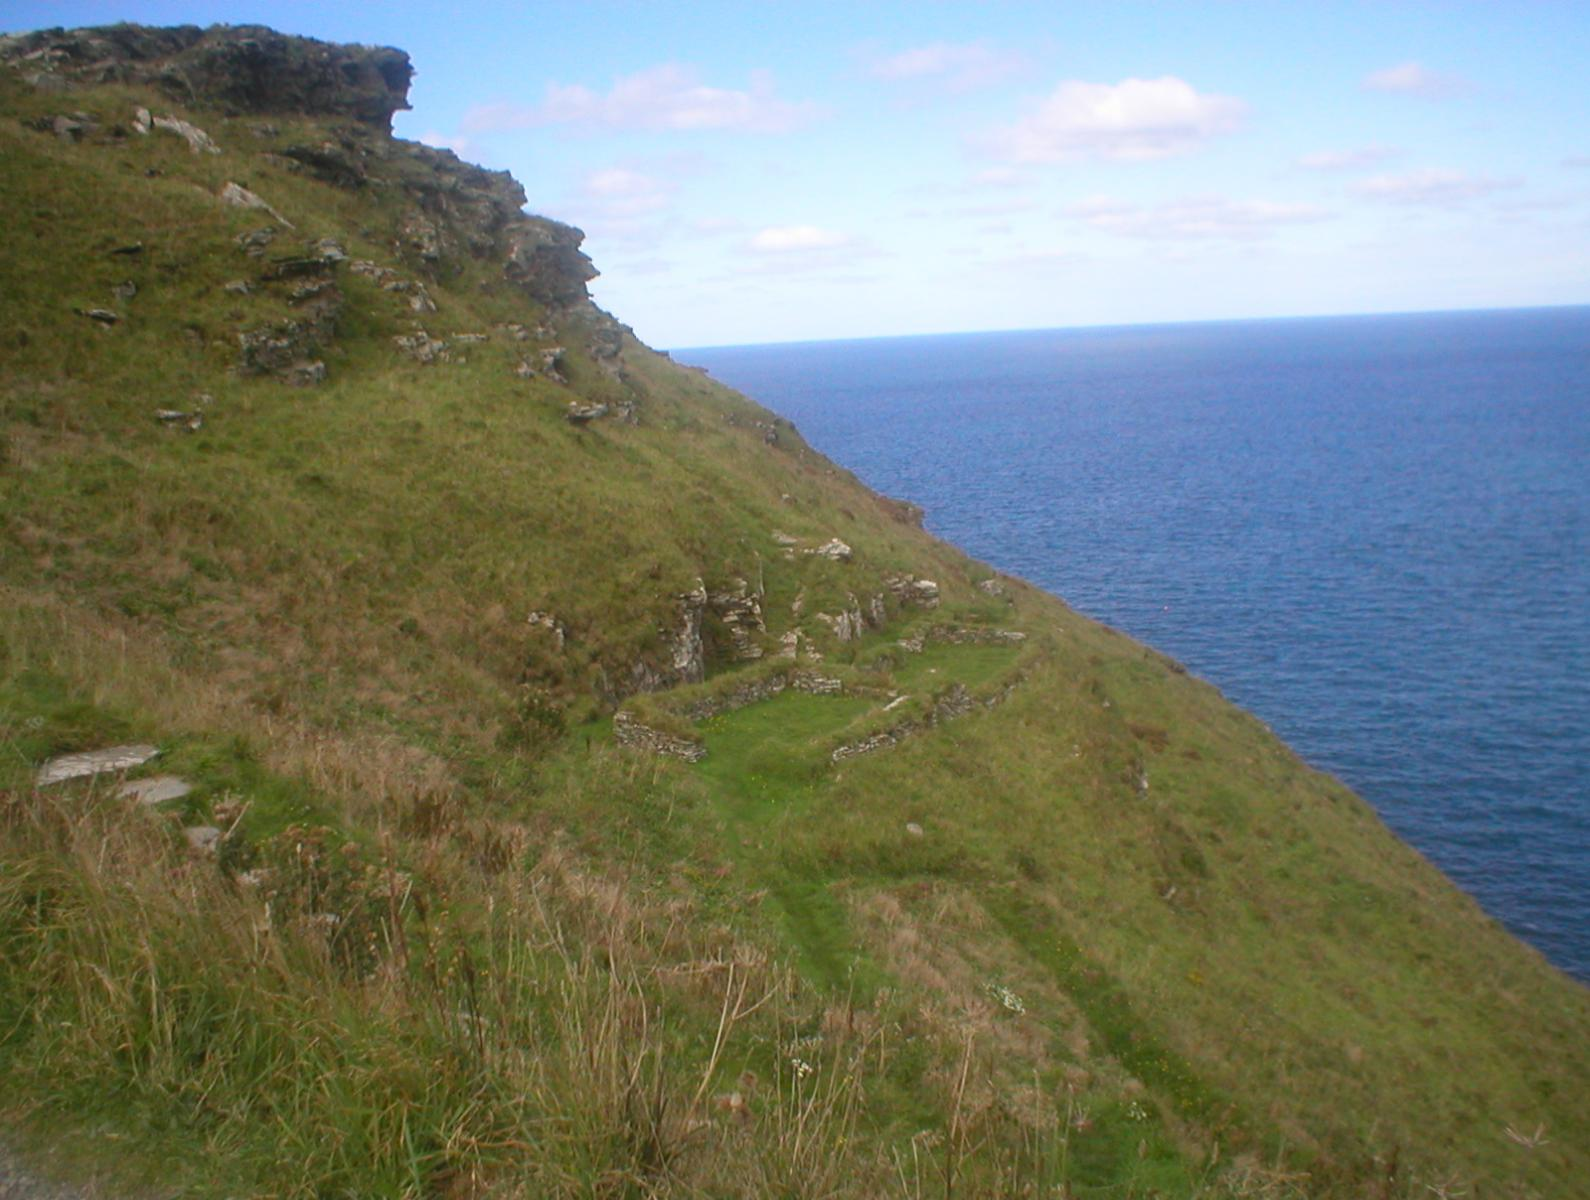 Tintagel, King Arthur's castle and birthplace